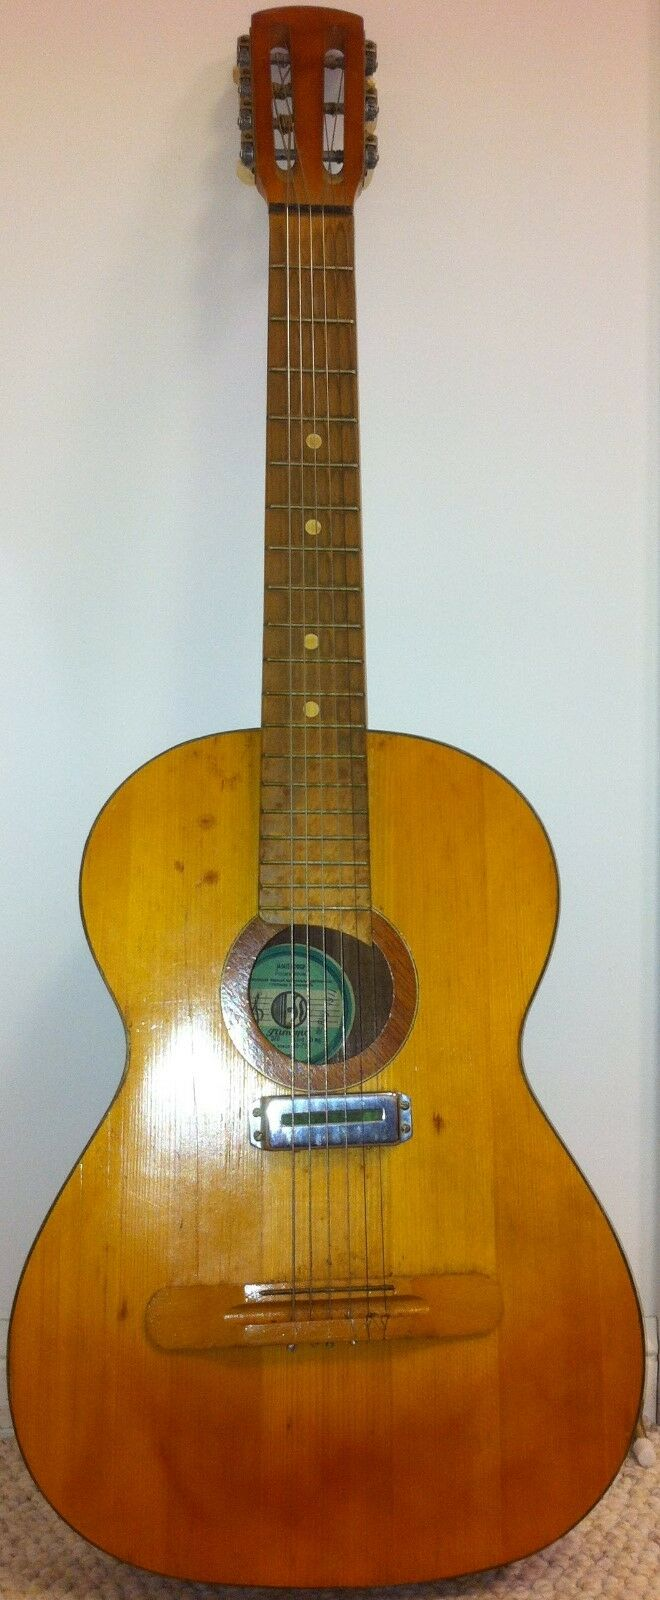 Antique Vintage 1970s Guitar 7 Strings Acoustic